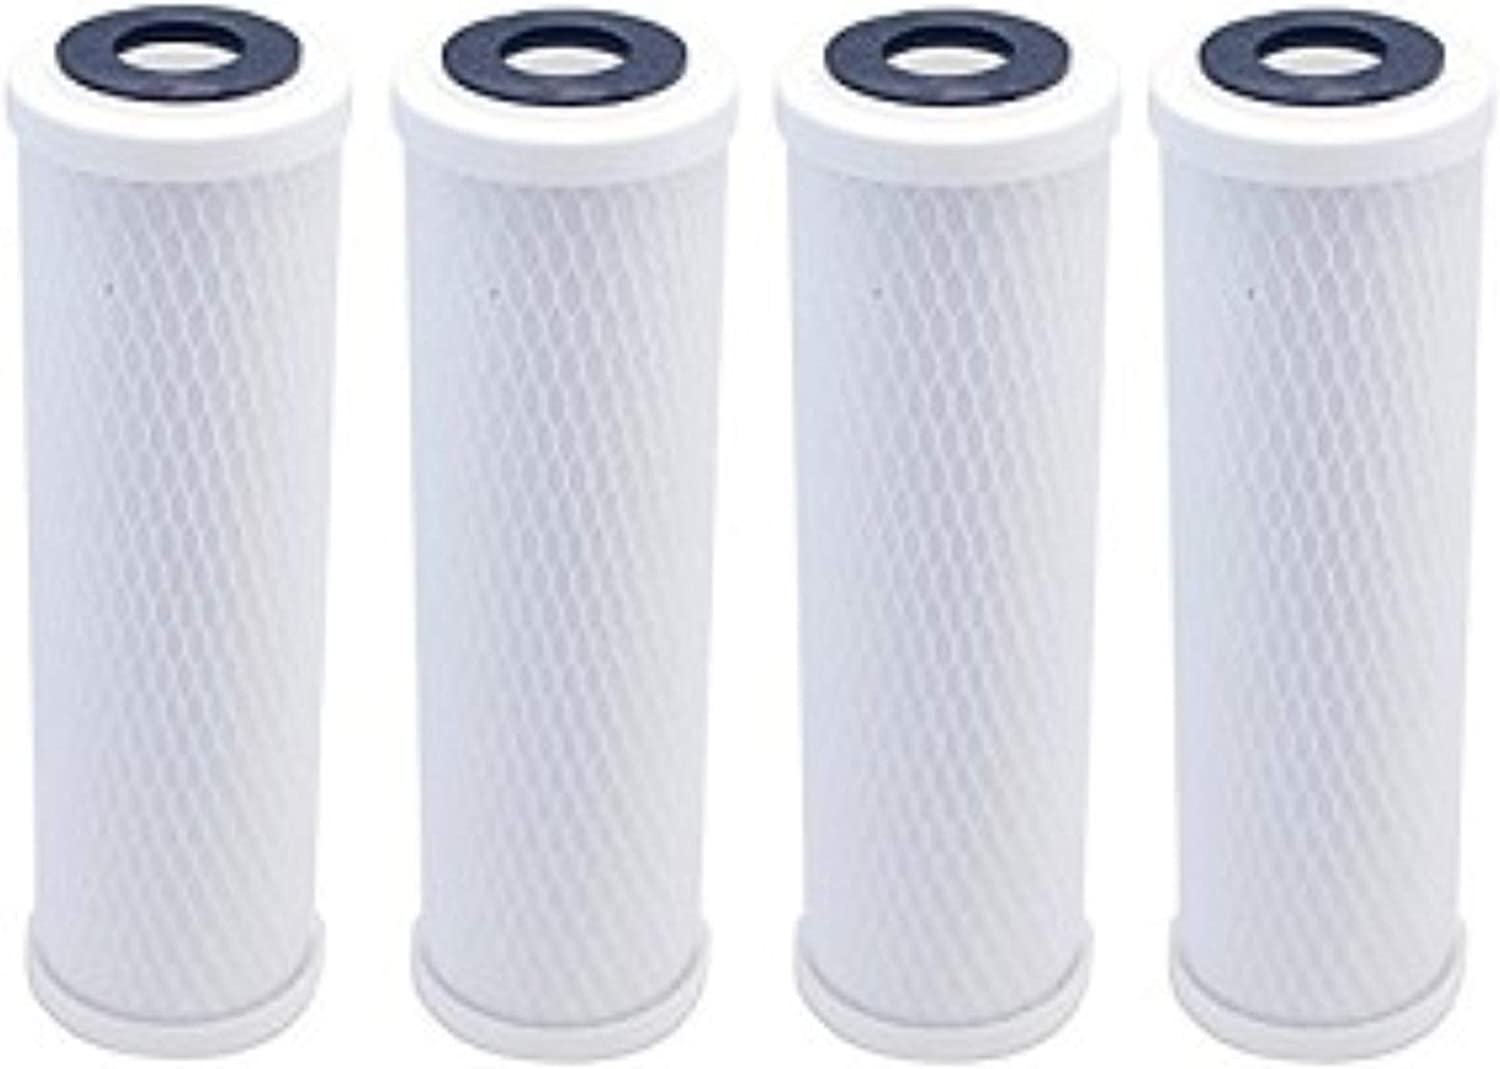 4-Pack Replacement for Compatible with OmniFIlter CBF3 Activated Carbon Block Filter - Universal 10